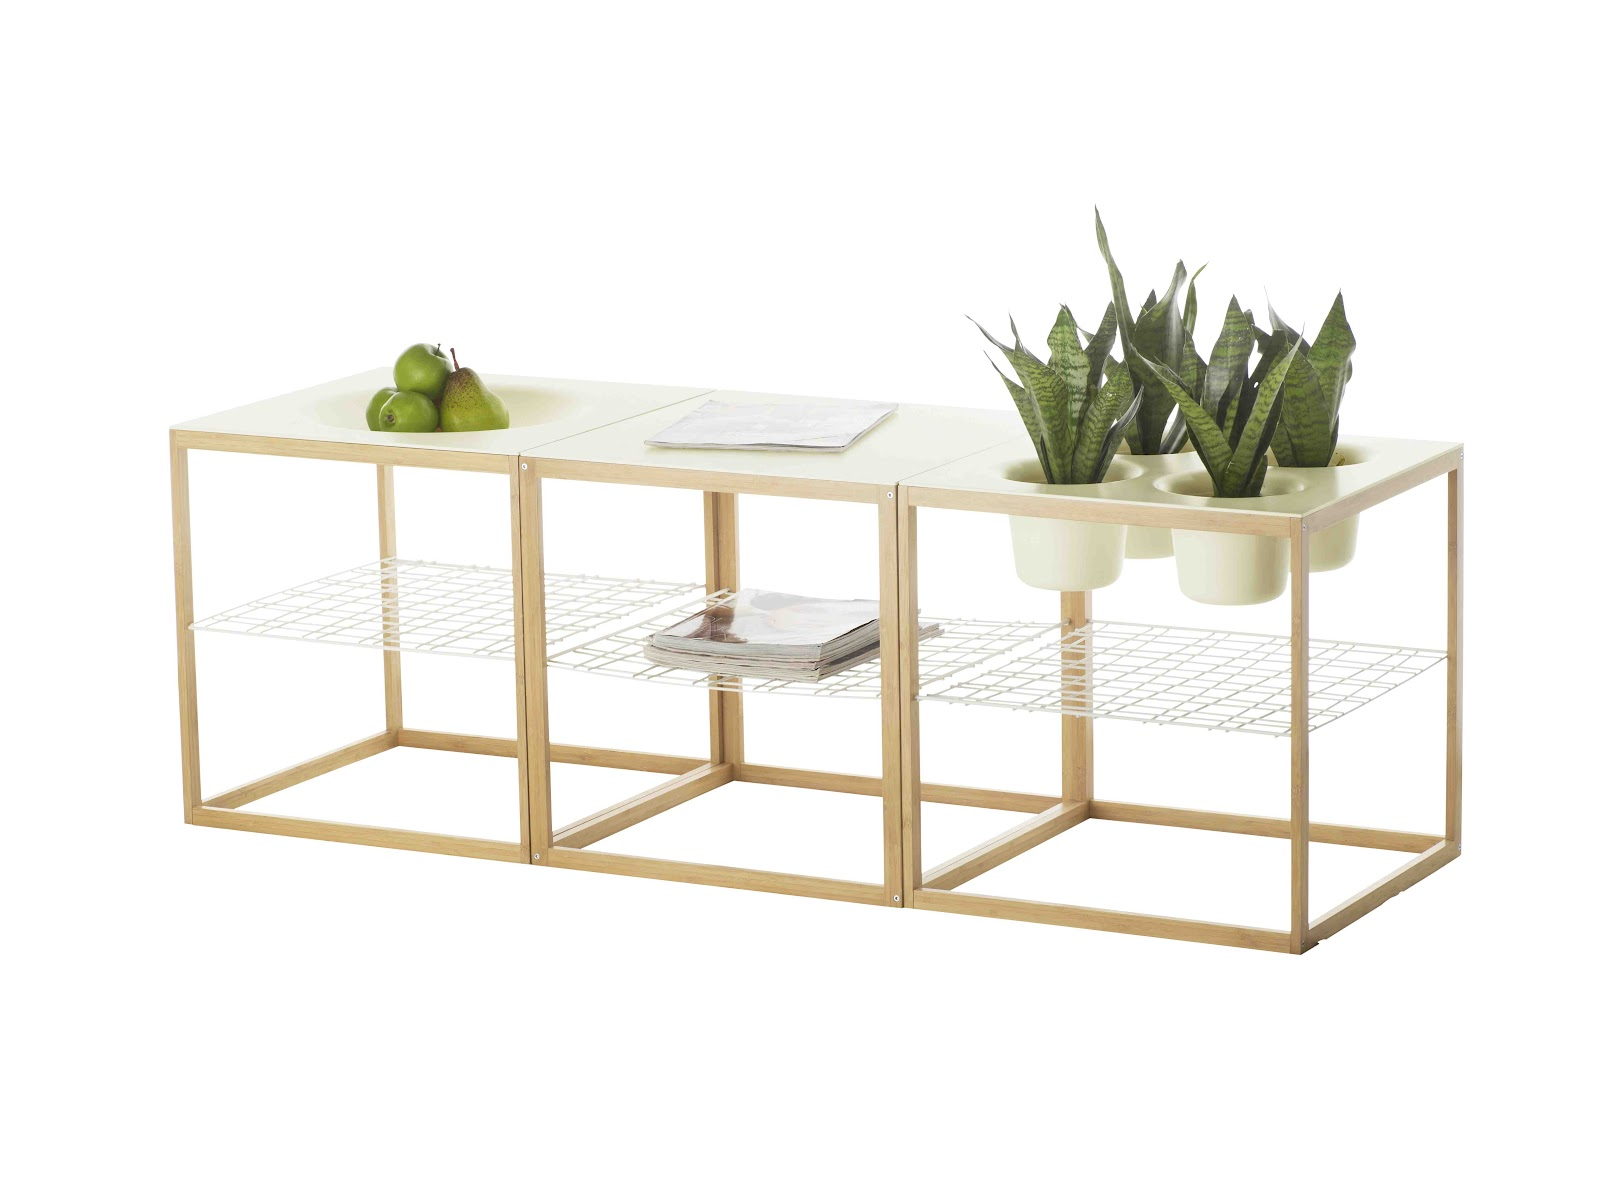 Plantentafel het groenlab for Ikea table 9 99